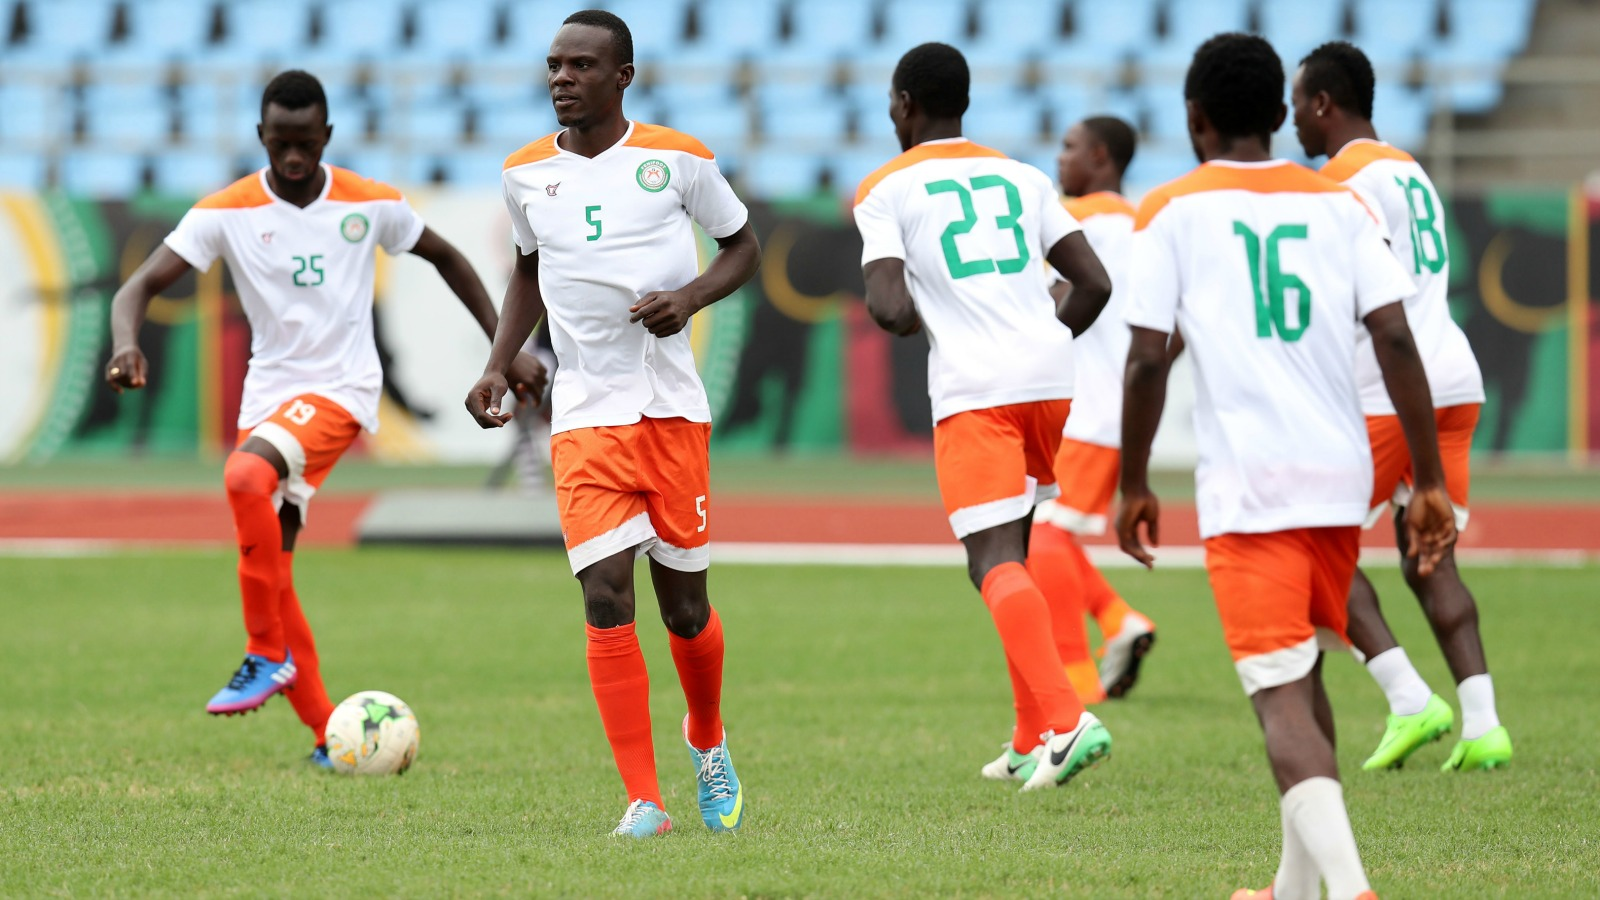 WAFU CUP: Niger coach confident of winning competition after shock Senegal victory